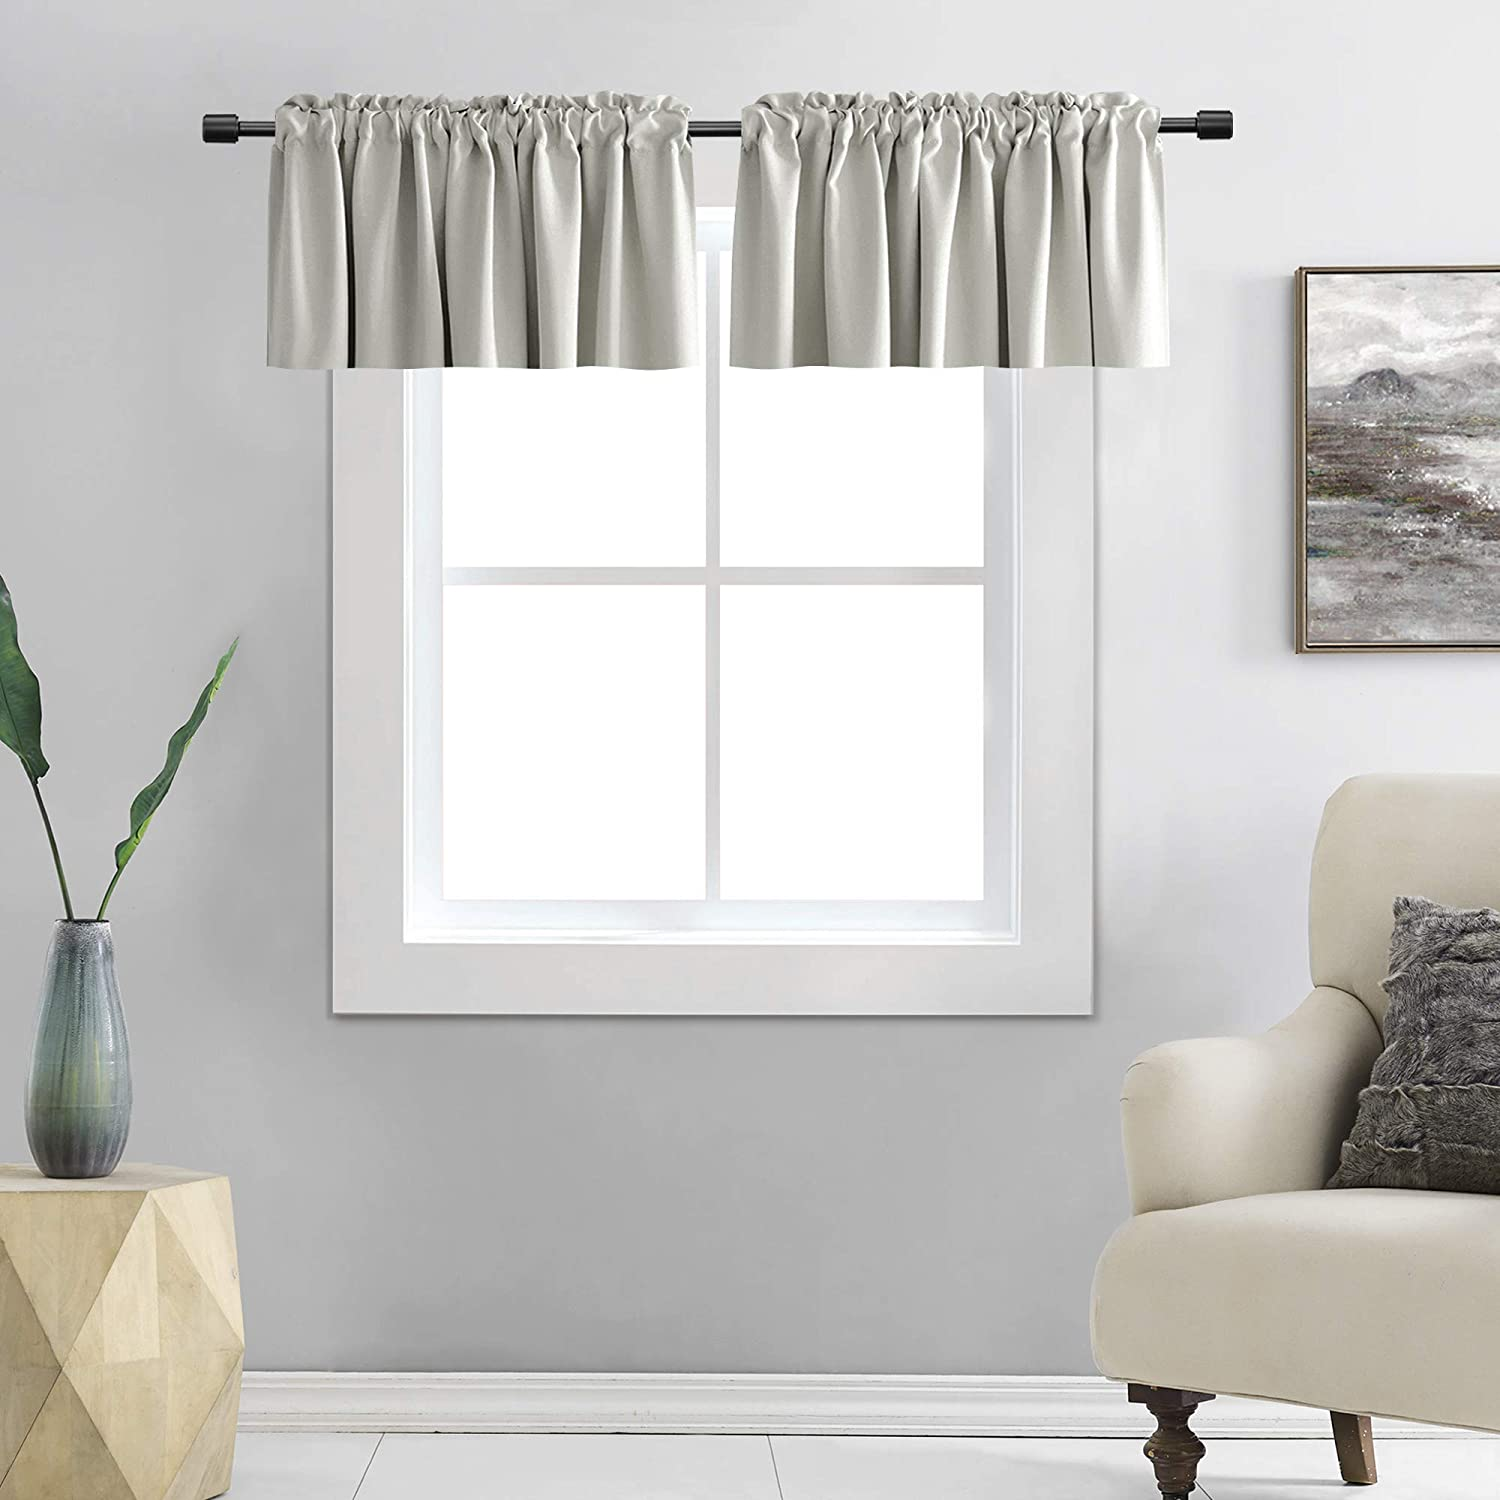 DONREN Light Grey Valance - Kitchen Valances for Small Window with Rod Pocket (2 Panels,42 by 12 Inch)